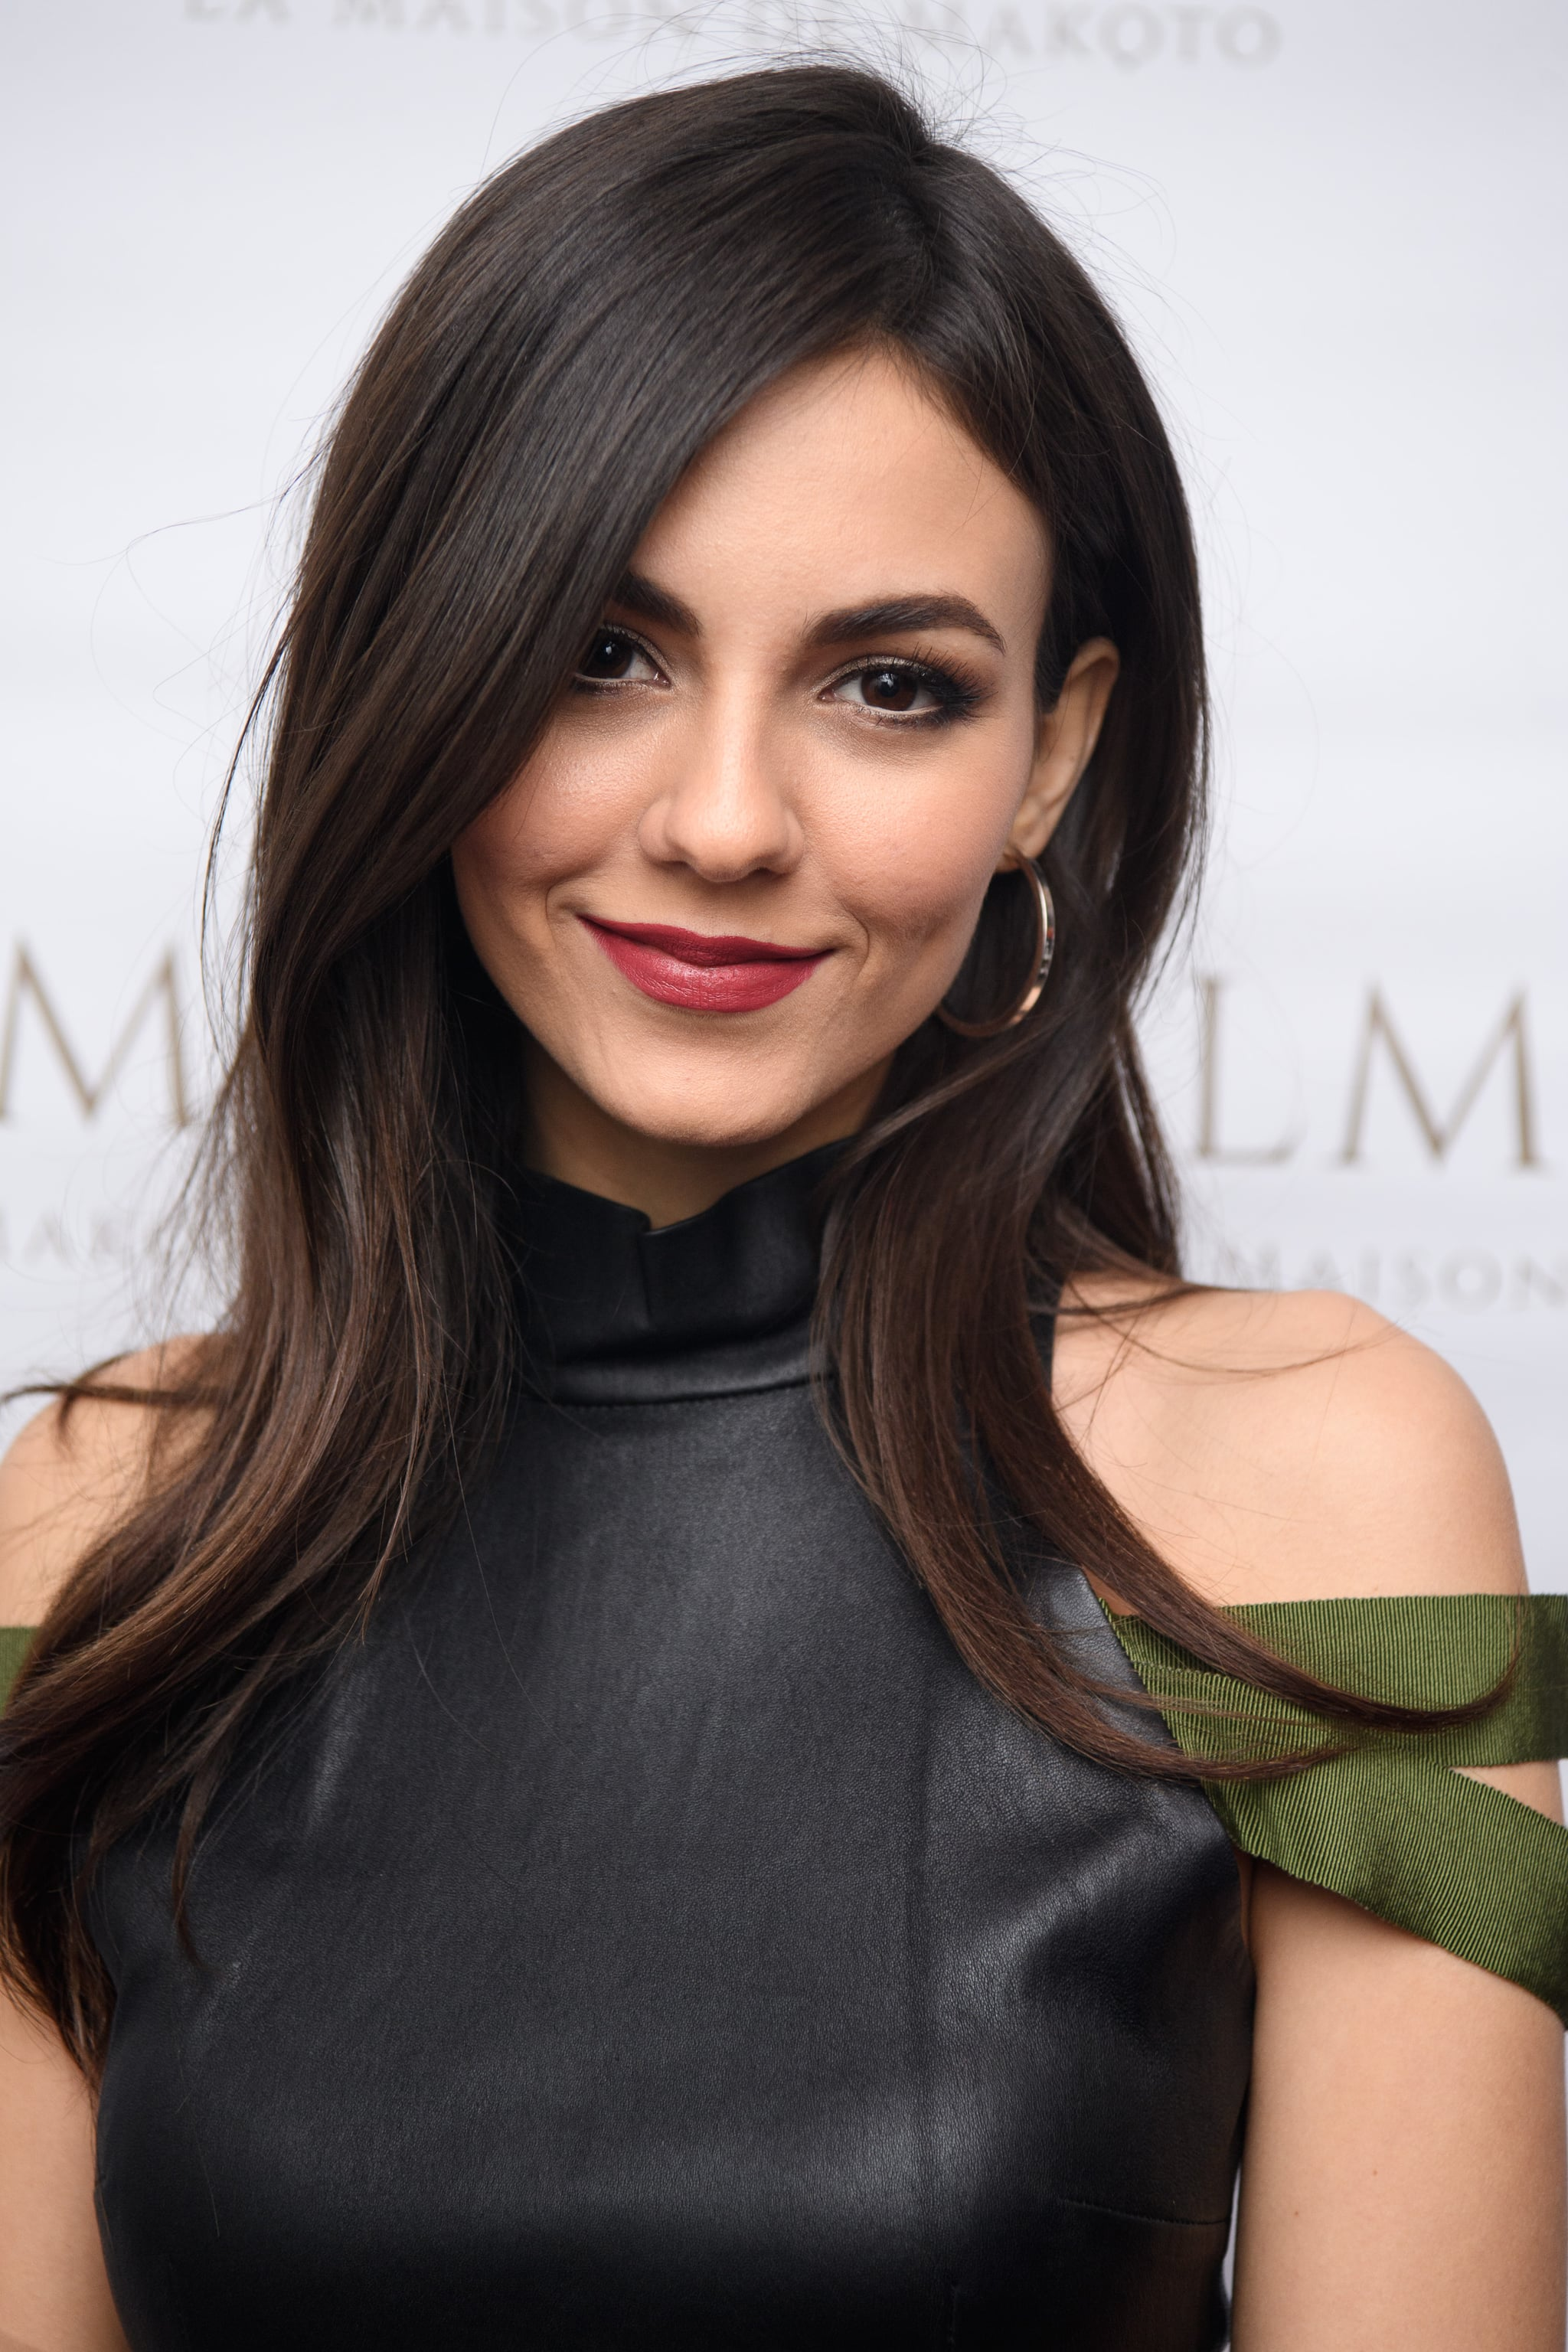 Victoria Justice Sexy Pictures photo 25